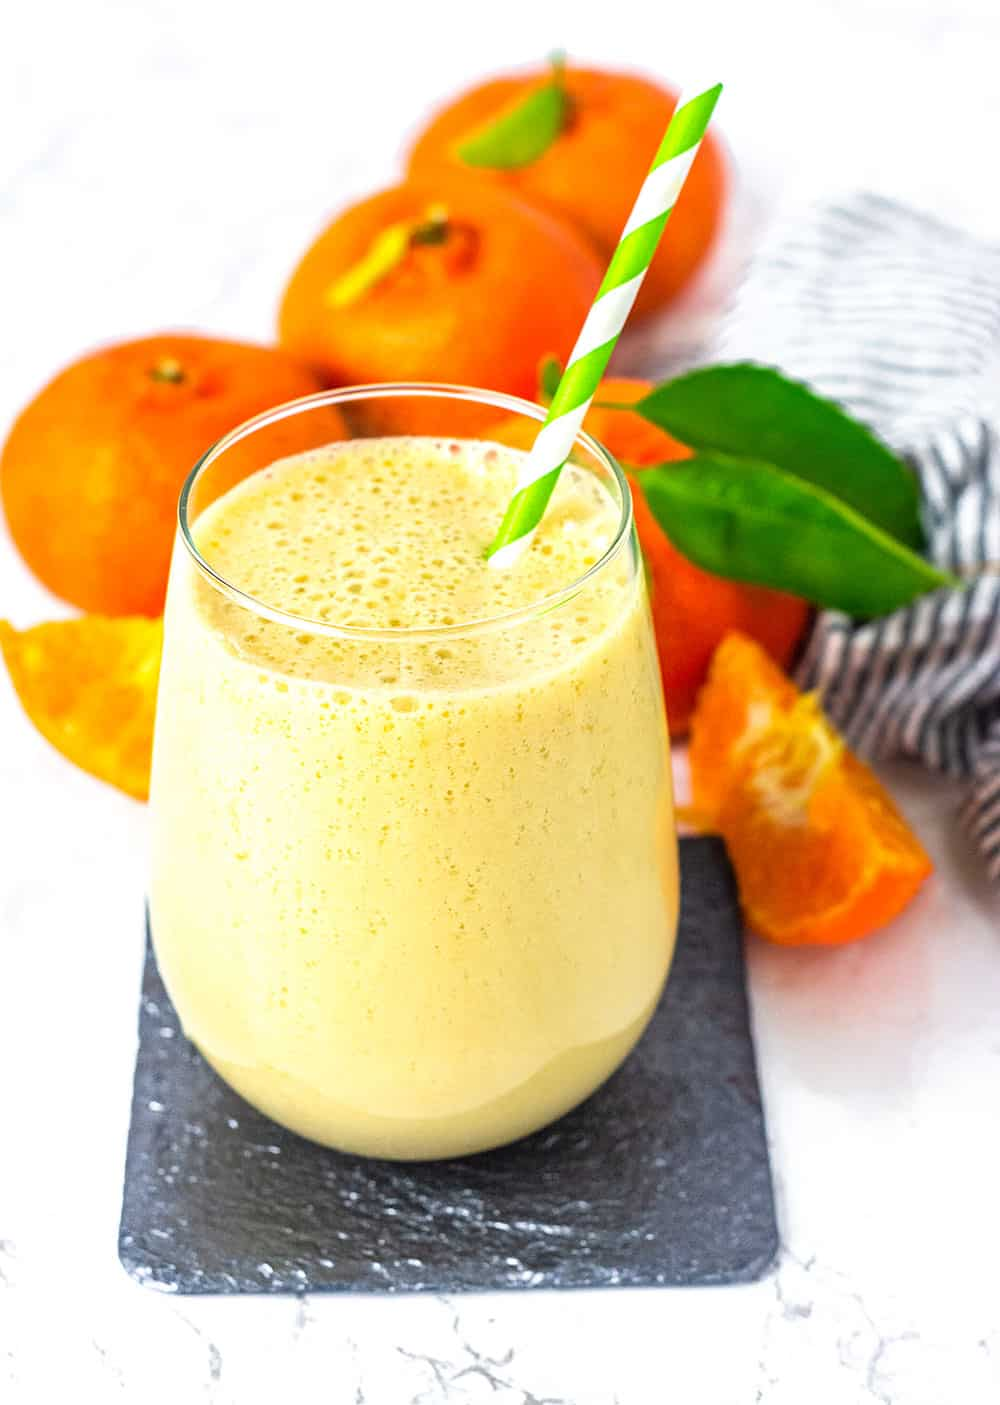 orange smoothie with green and white straw, on a black coaster with cut and whole oranges on a white background